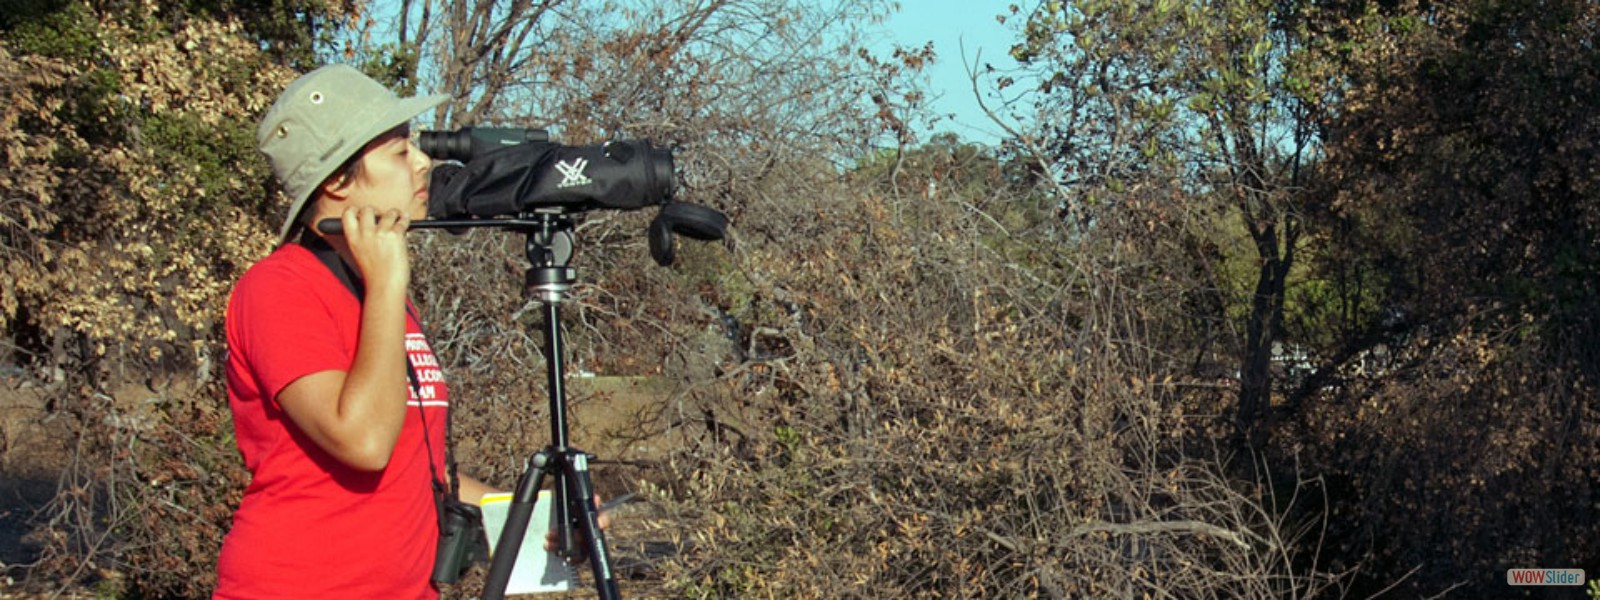 Pomona College Senior Research student observes Western Scrub-Jay behavior